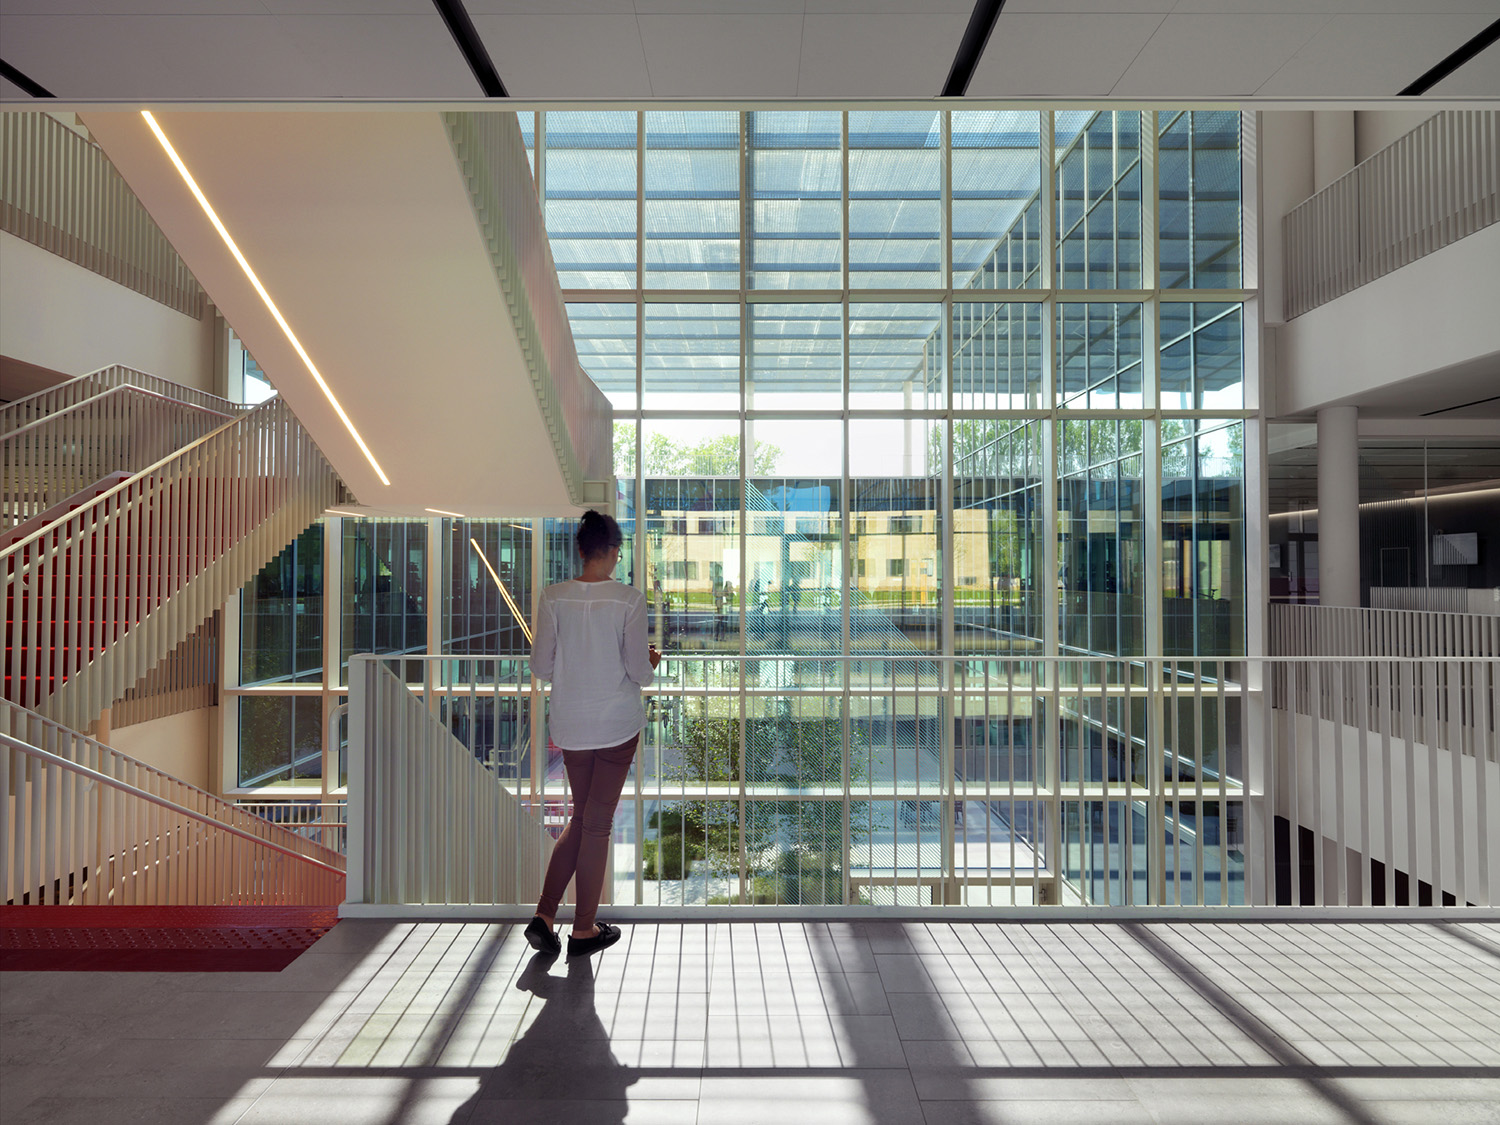 The entrance hall in the Hub building Andrea Martiradonna